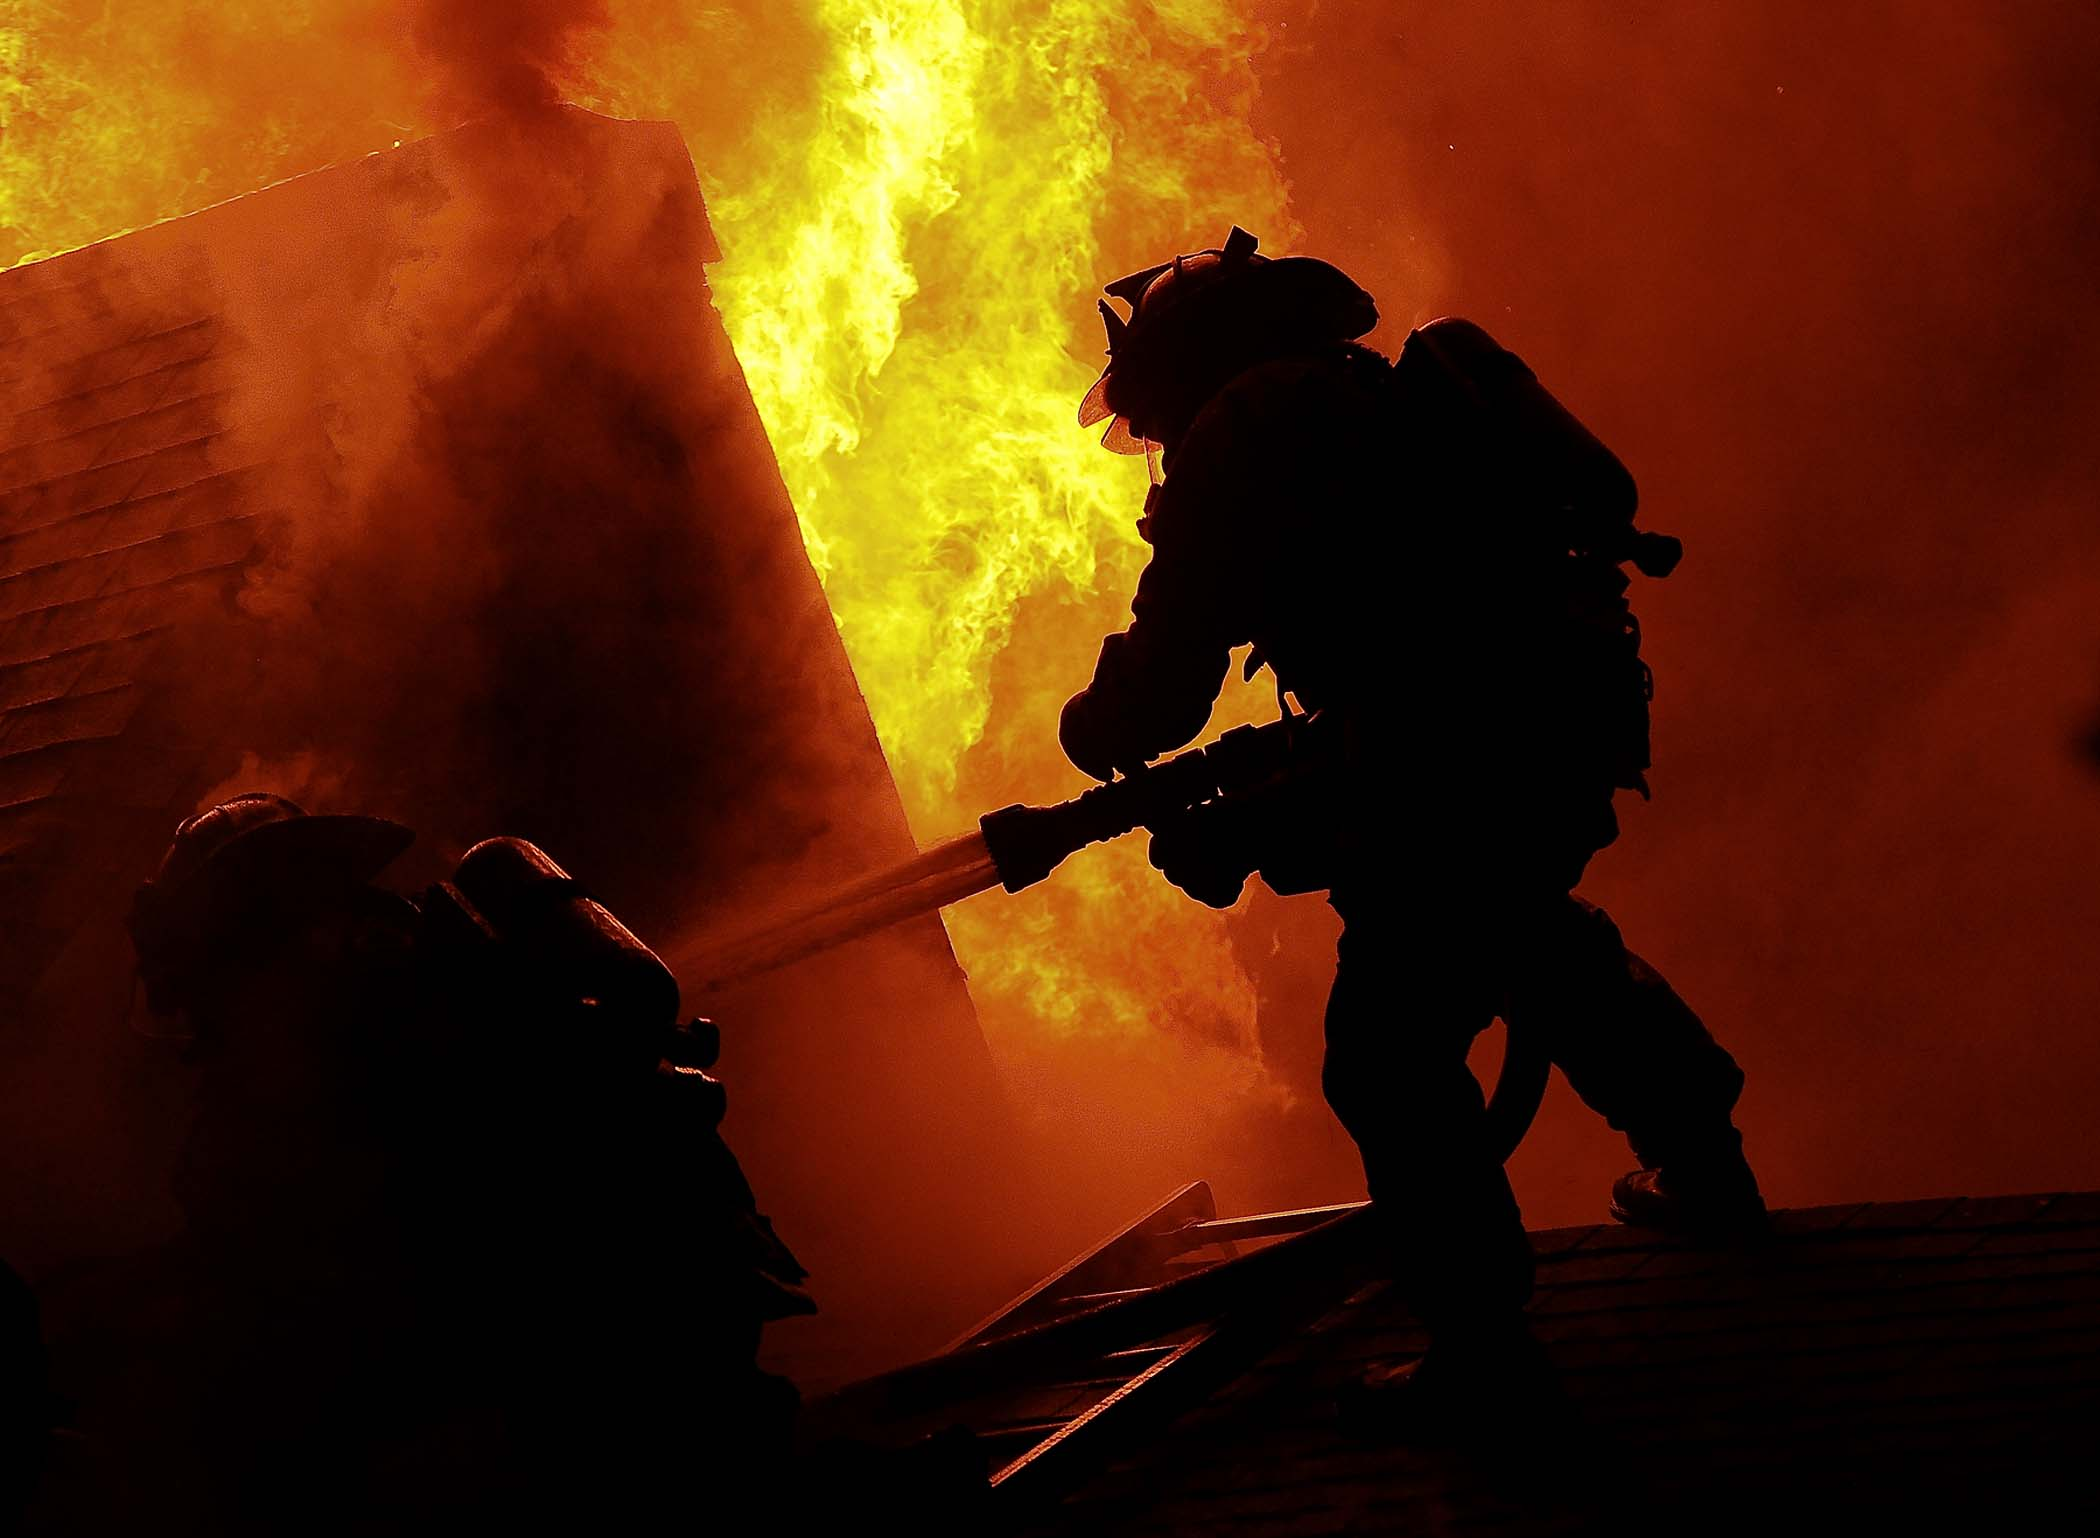 Firefighter Wallpapers